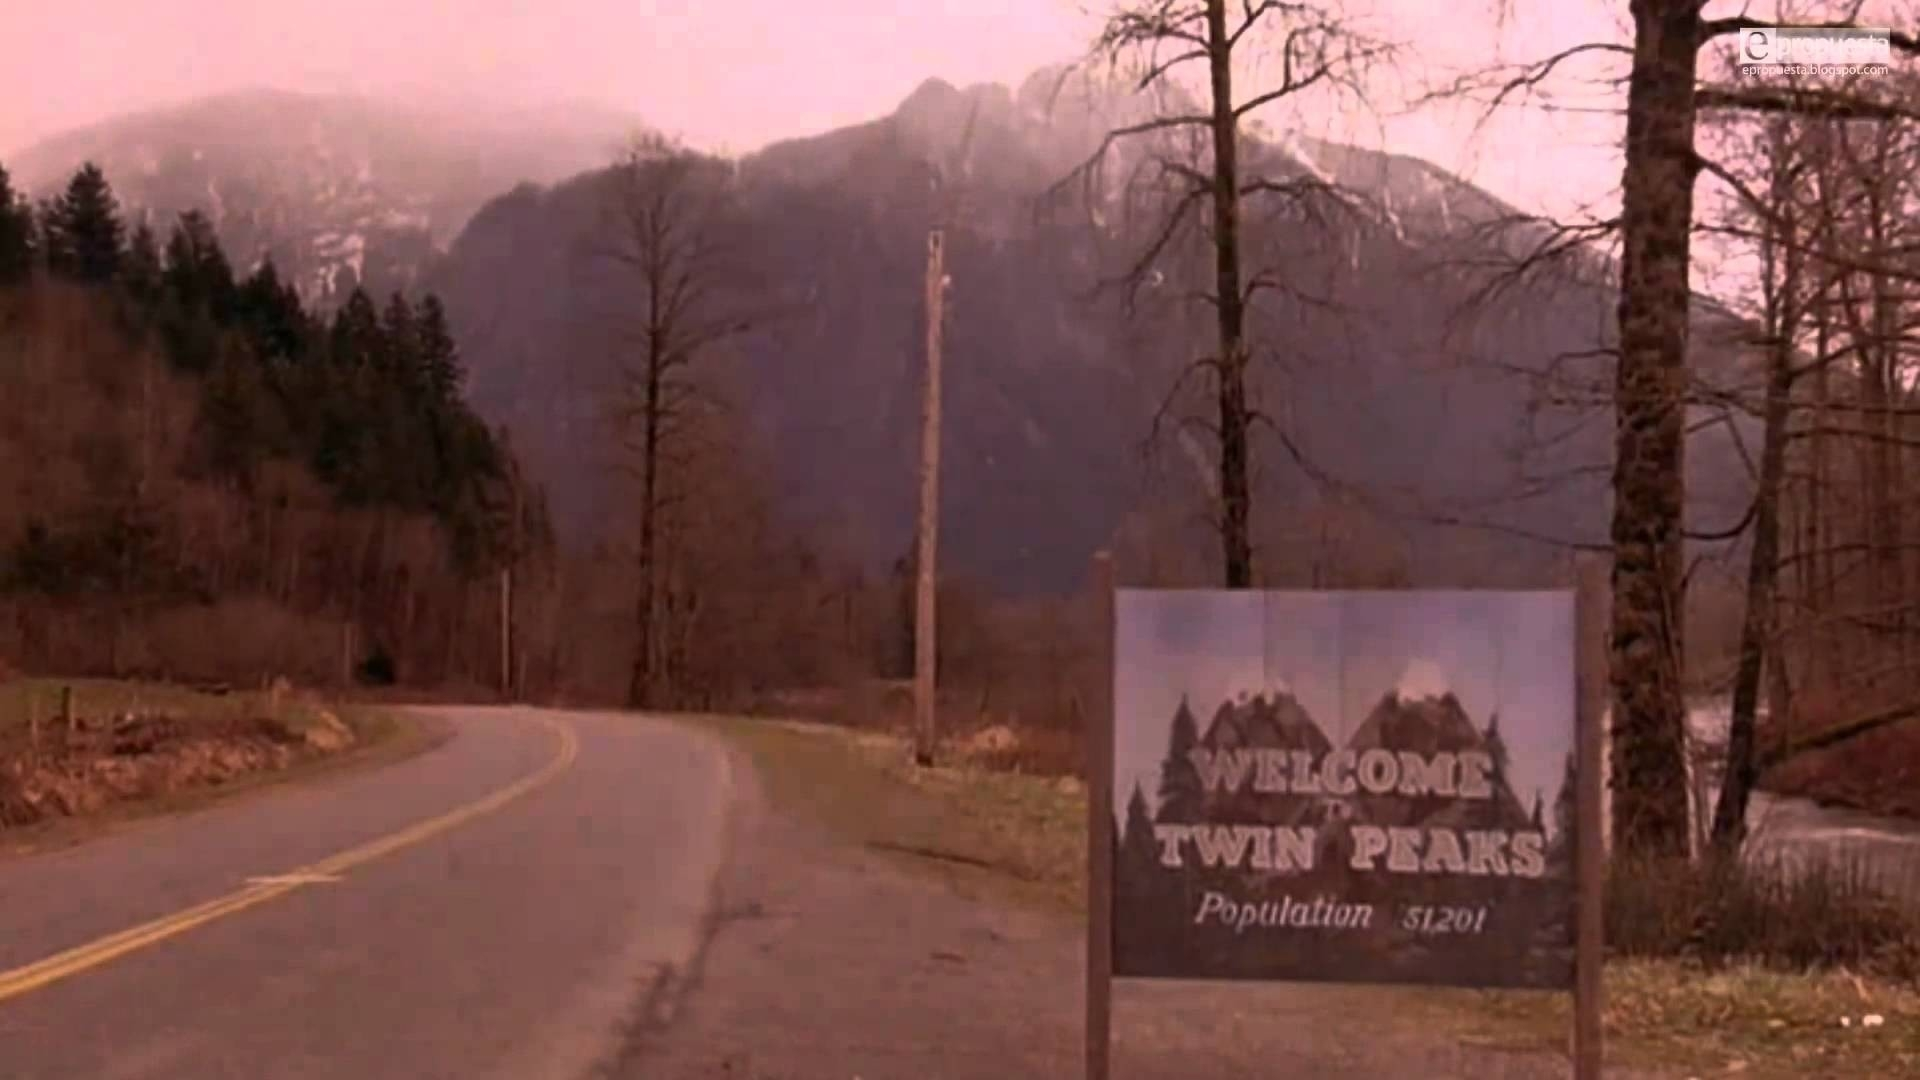 twin peaks wallpaper ·① download free beautiful hd wallpapers for